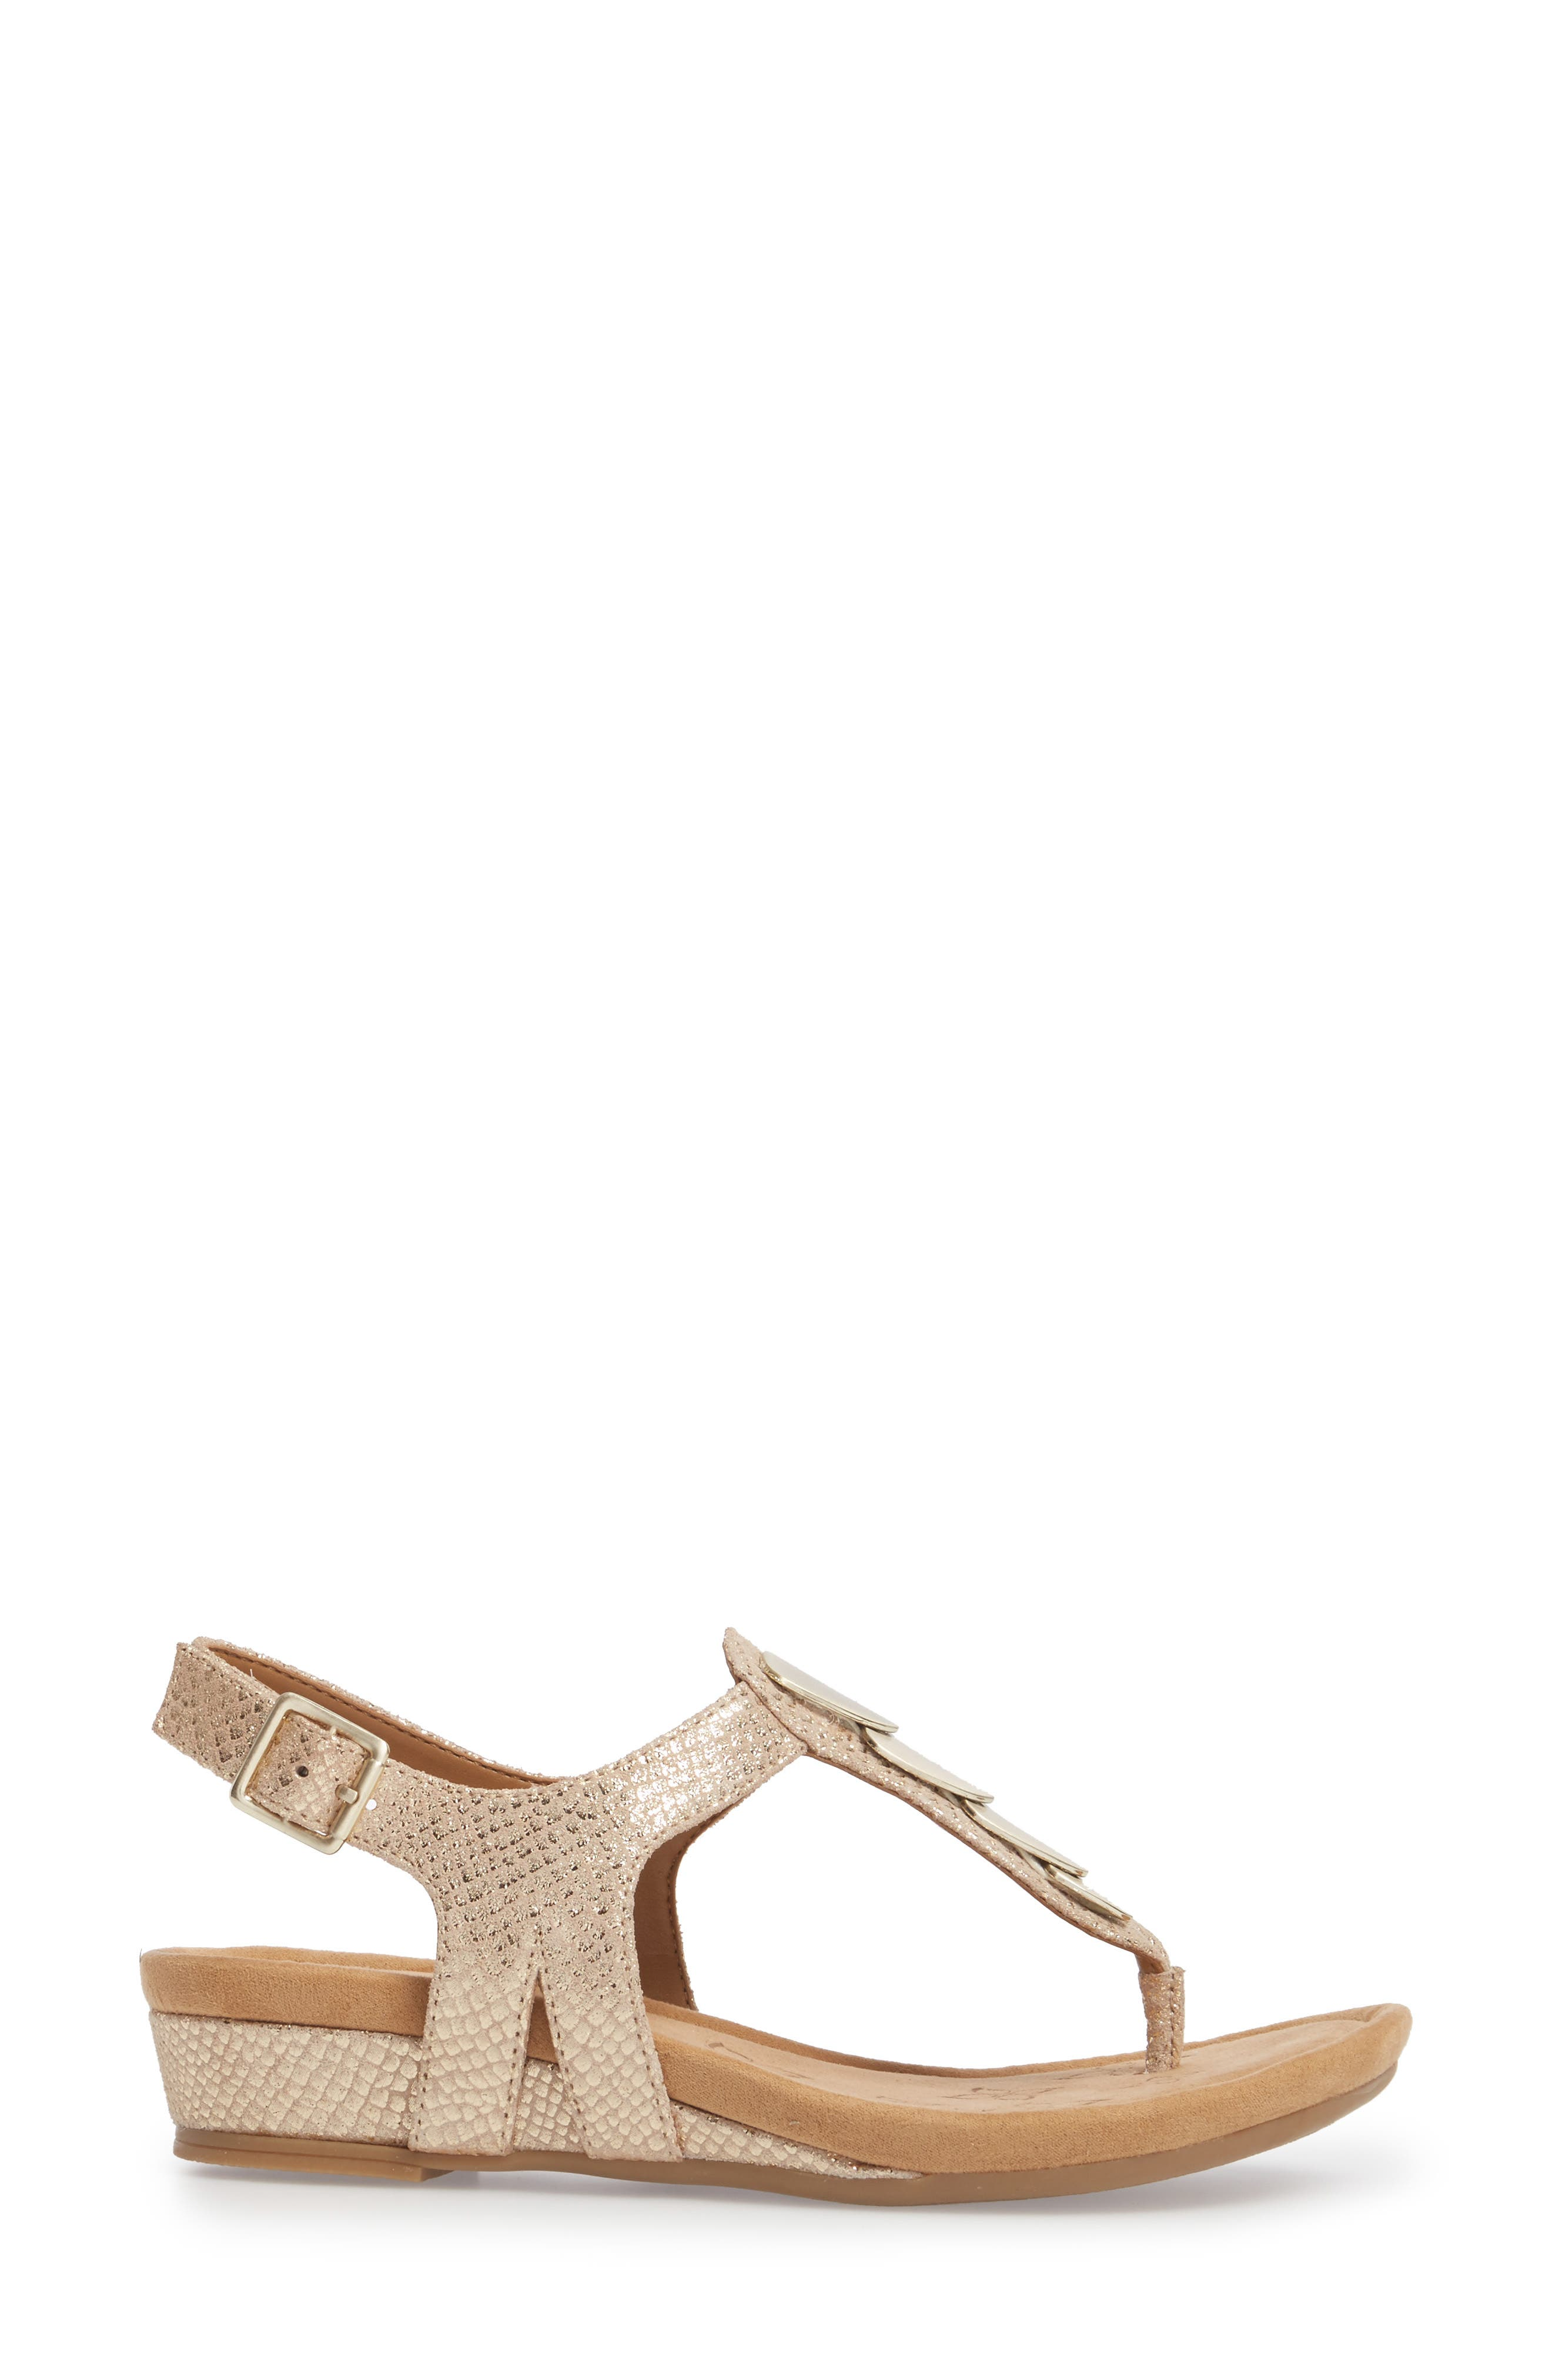 Summit Wedge Sandal,                             Alternate thumbnail 3, color,                             Gold Suede